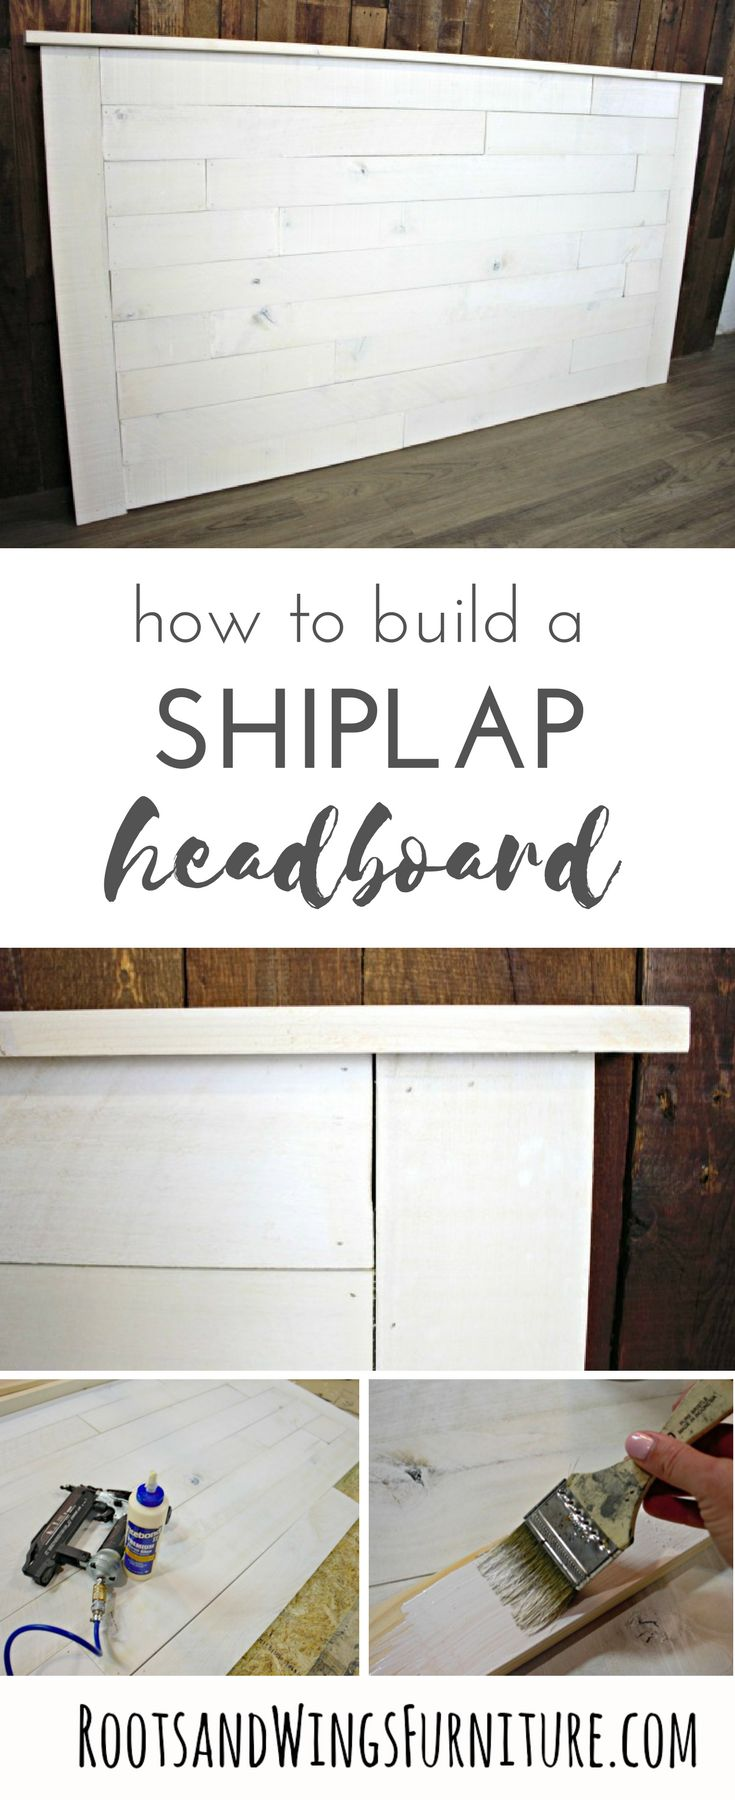 Build your own shiplap headboard with these complete and easy instructions. Give the custom look youve been wanting in your bedroom. Tutorial by Jenni of Roots and Wings Furniture.